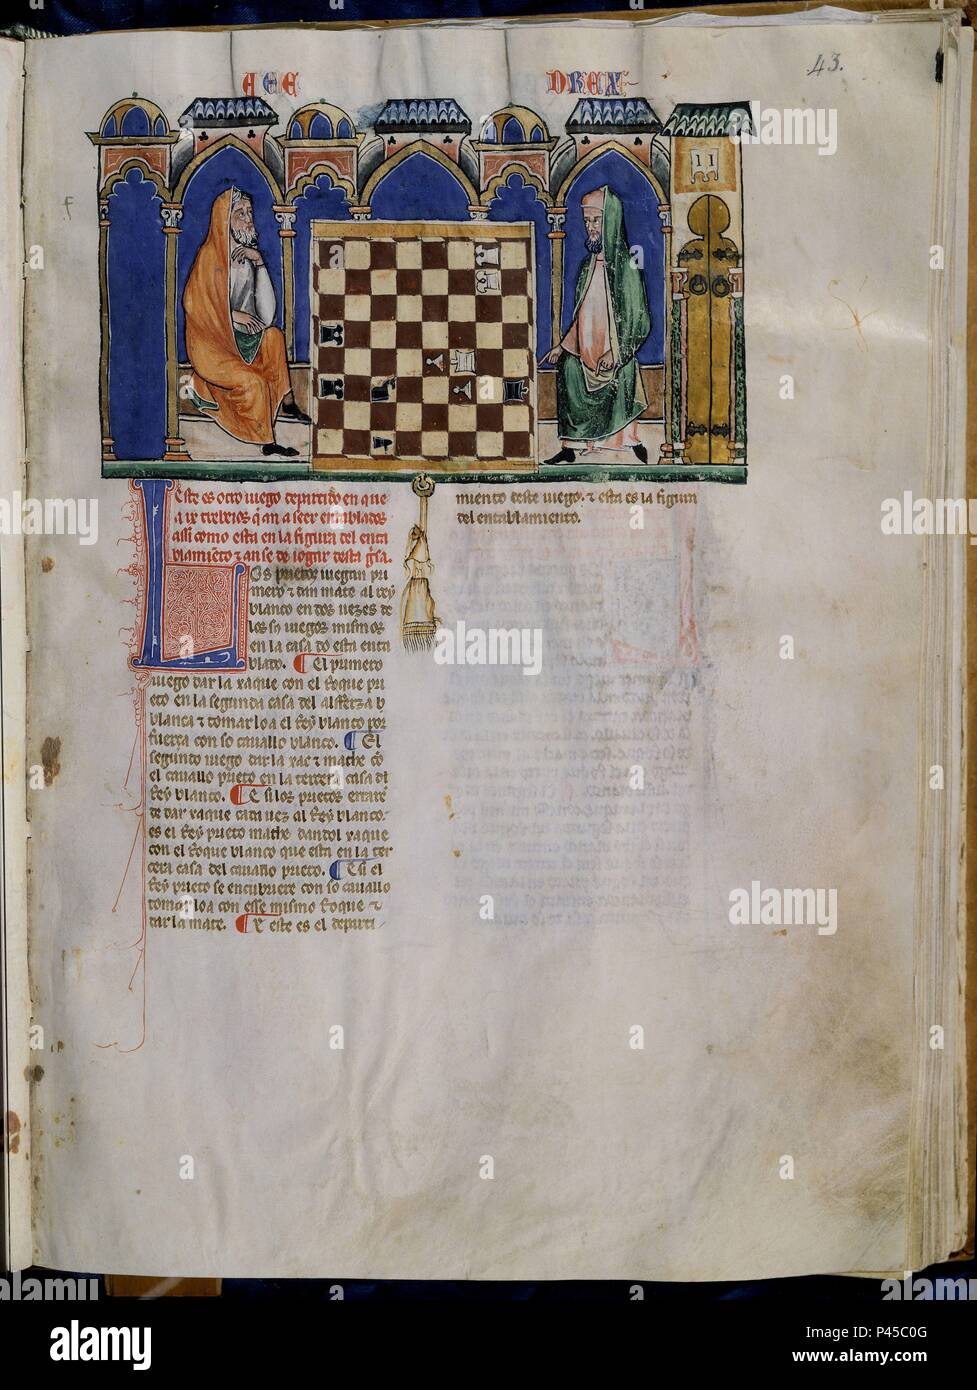 LIBRO DE JUEGOS O LIBRO DEL AJEDREZ DADOS Y TABLAS - 1283 - FOLIO 43R - DOS HOMBRES JUGANDO AL AJEDREZ - MANUSCRITO GOTICO. Author: Alfonso X of Castile the Wise (1221-1284). Location: MONASTERIO-BIBLIOTECA-COLECCION, SAN LORENZO DEL ESCORIAL, MADRID, SPAIN. Stock Photo